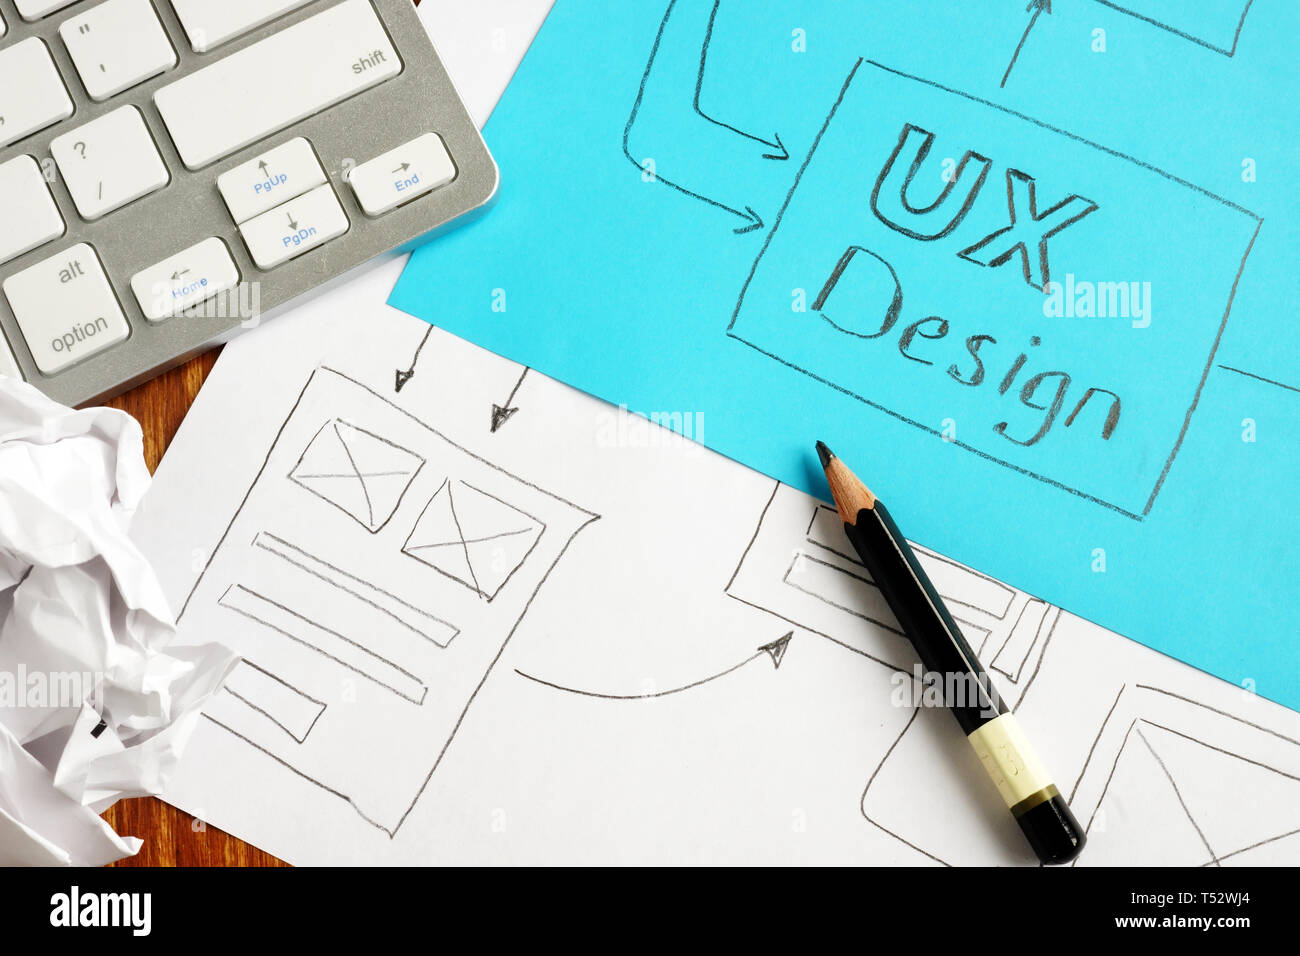 UX design and web site concept written on a page. - Stock Image